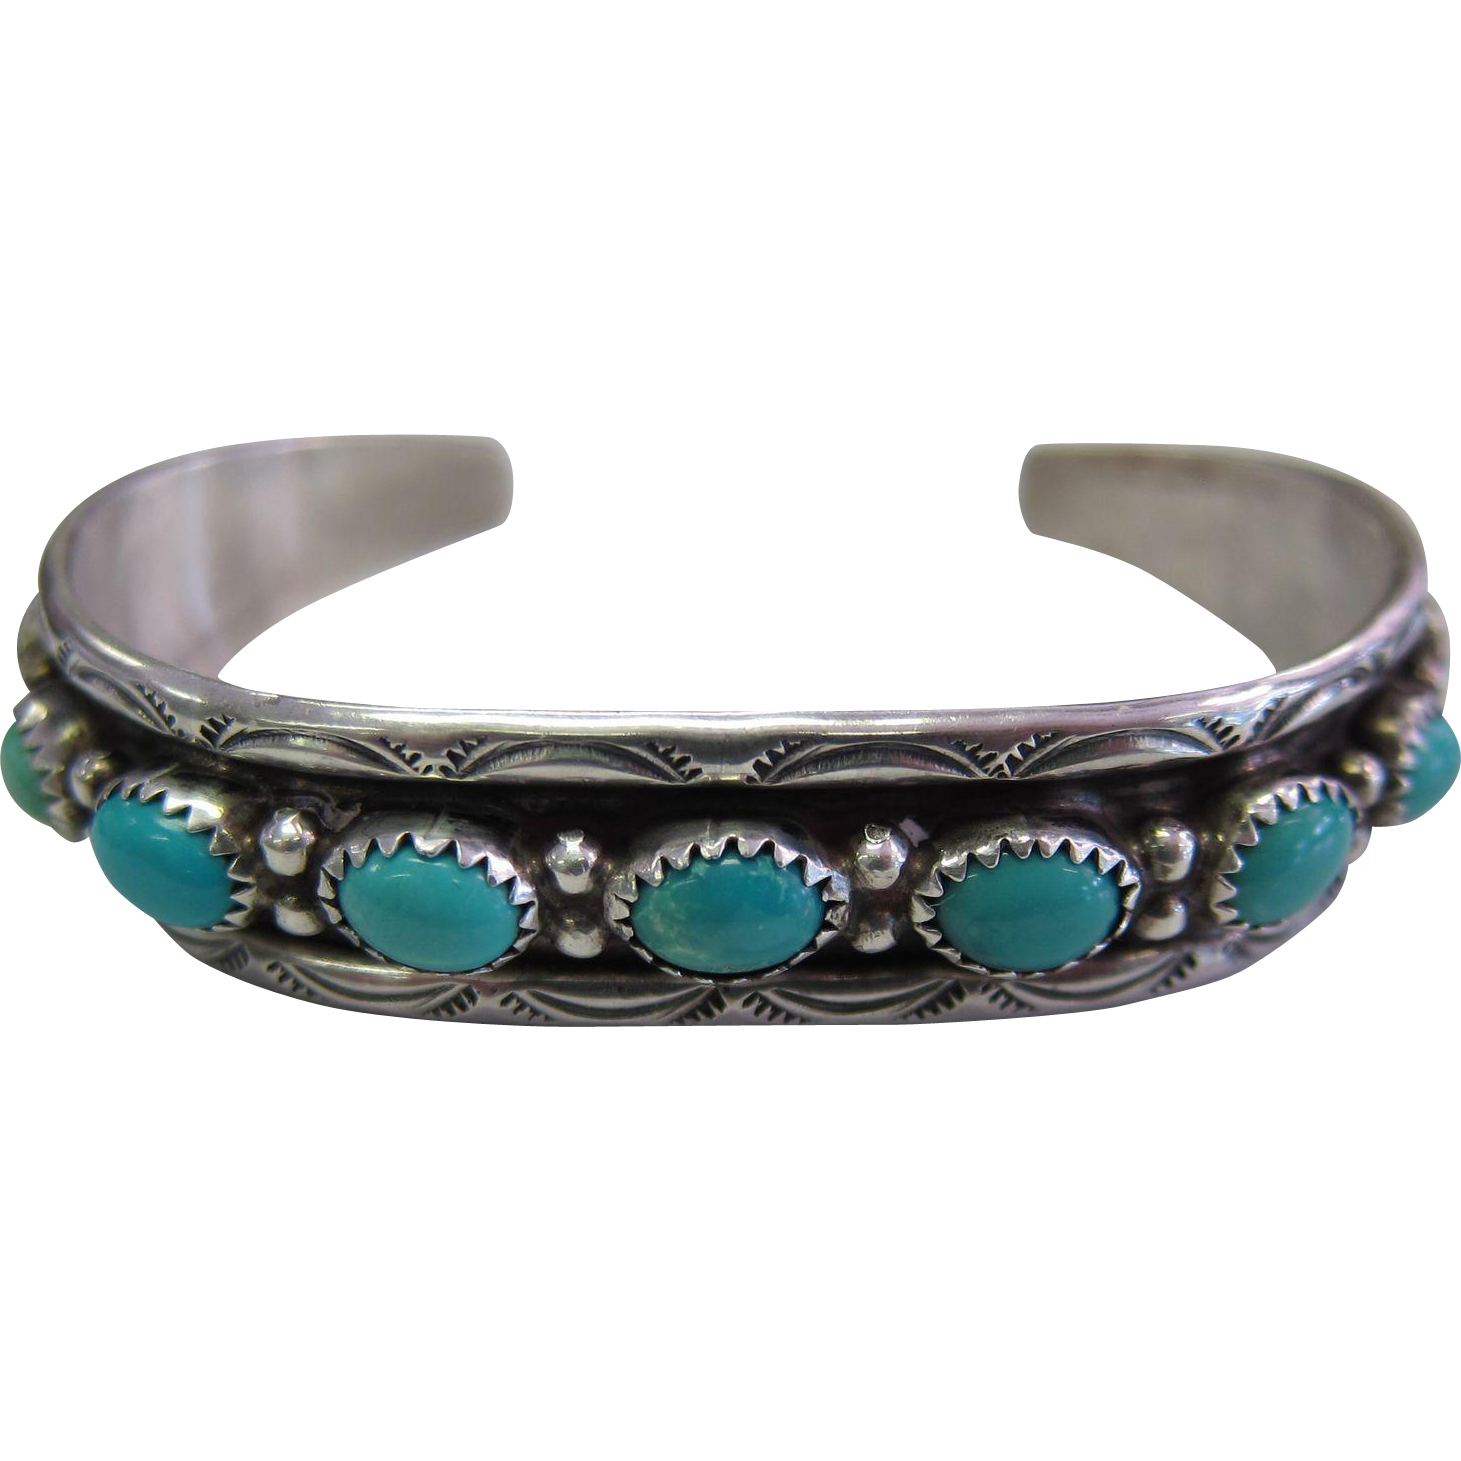 Vintage J.Cadman Navajo Old Pawn Turquoise Sterling Silver Cuff Bracelet